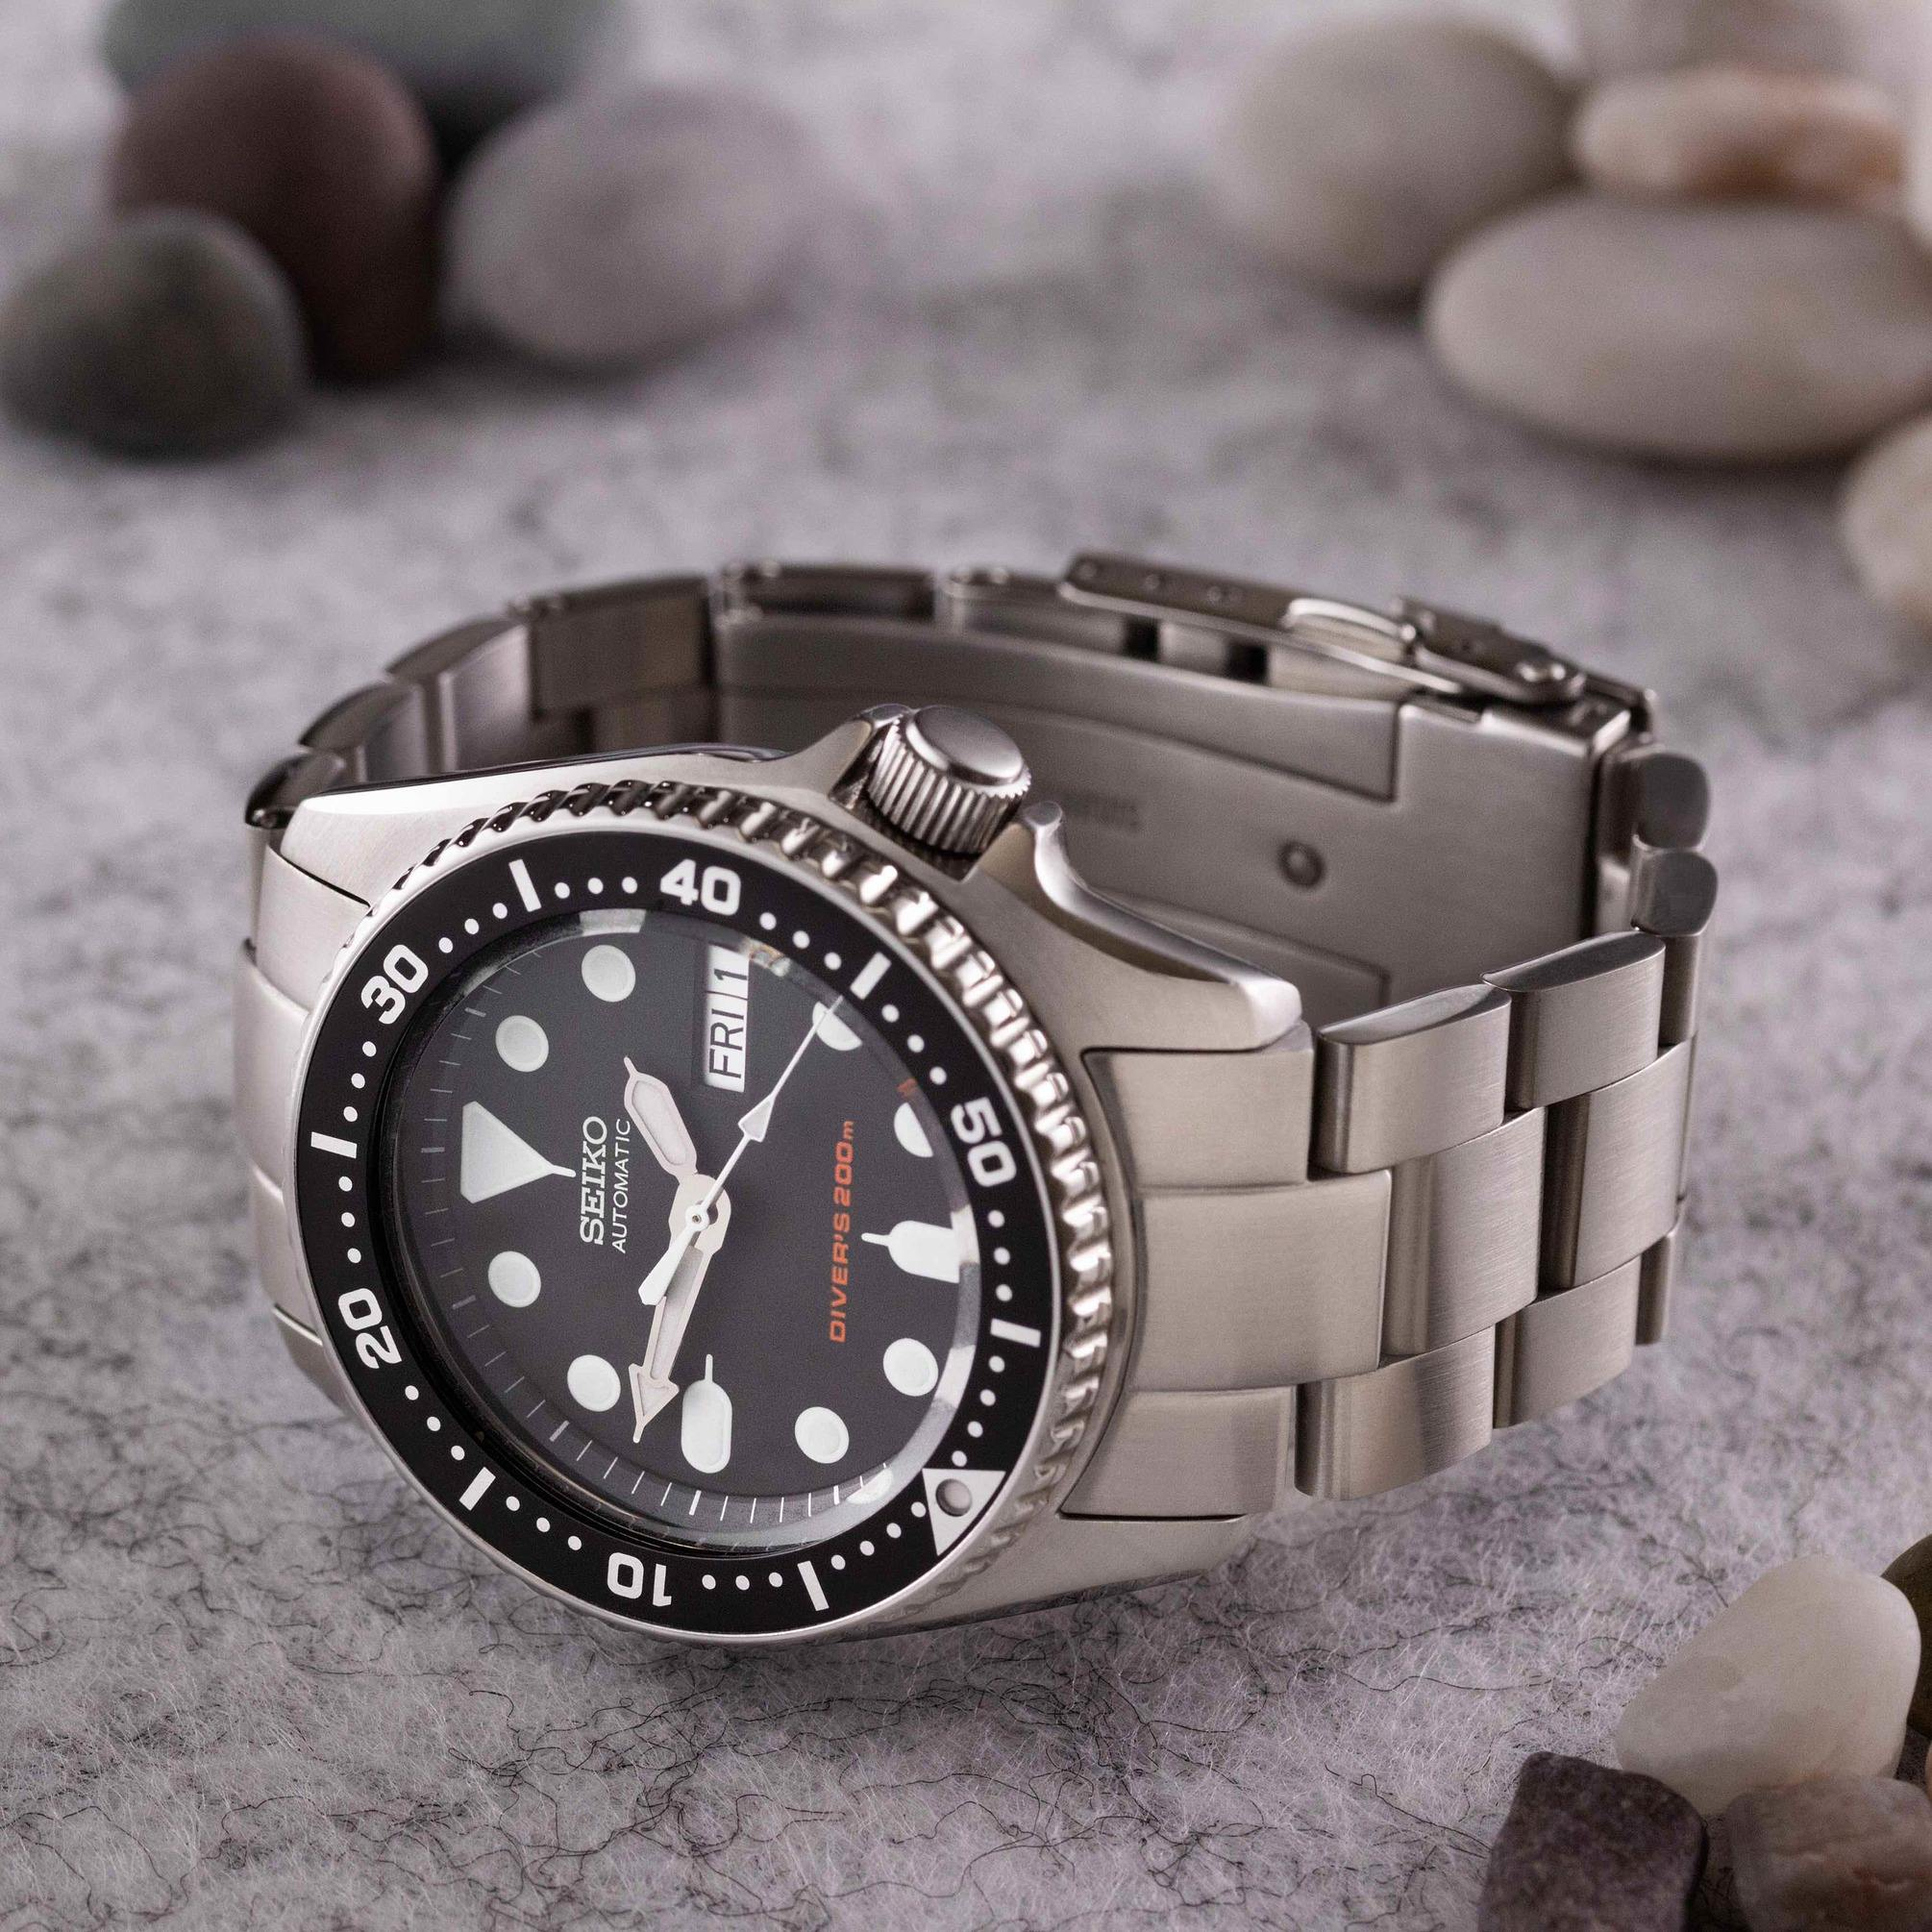 Seiko SKX013 oyster bracelet - The Modest Man